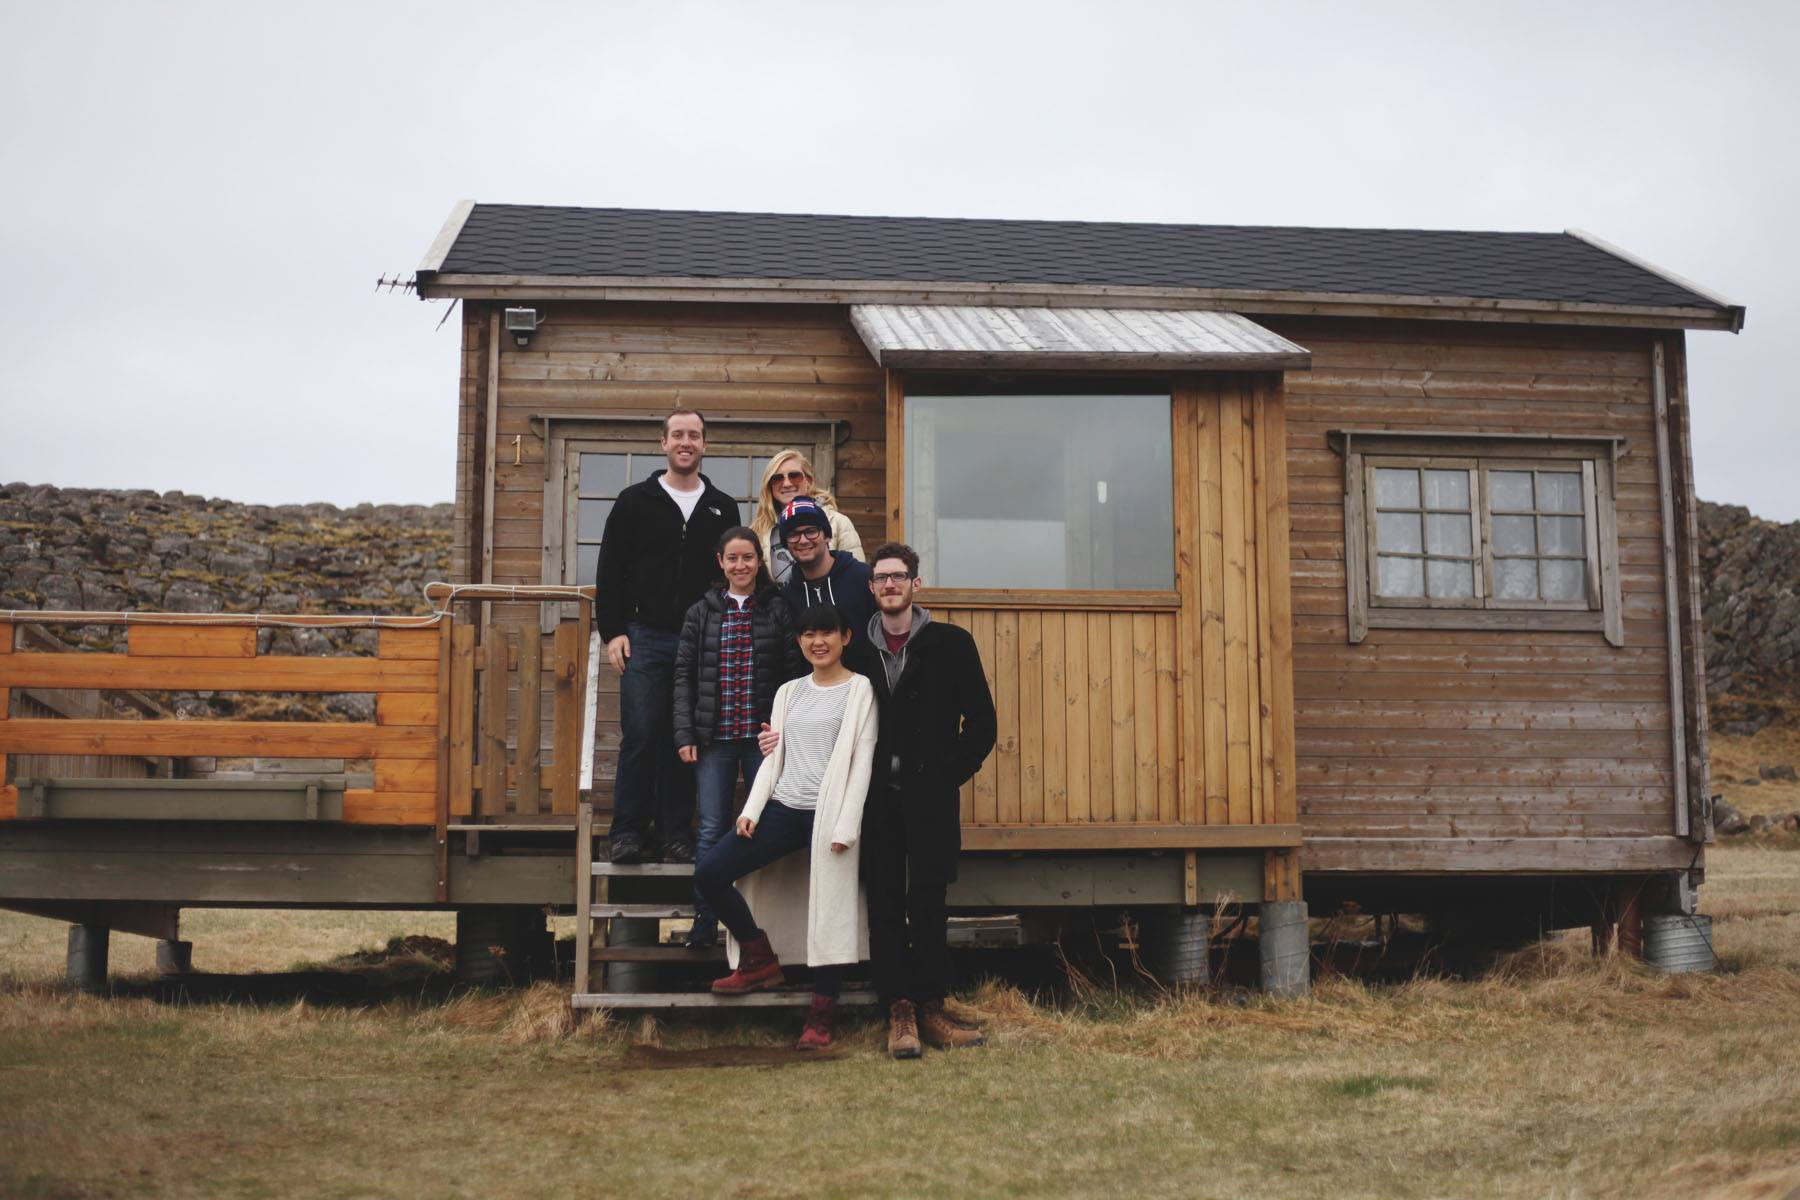 One big happy family that got cozy in this little, wooden cottage.